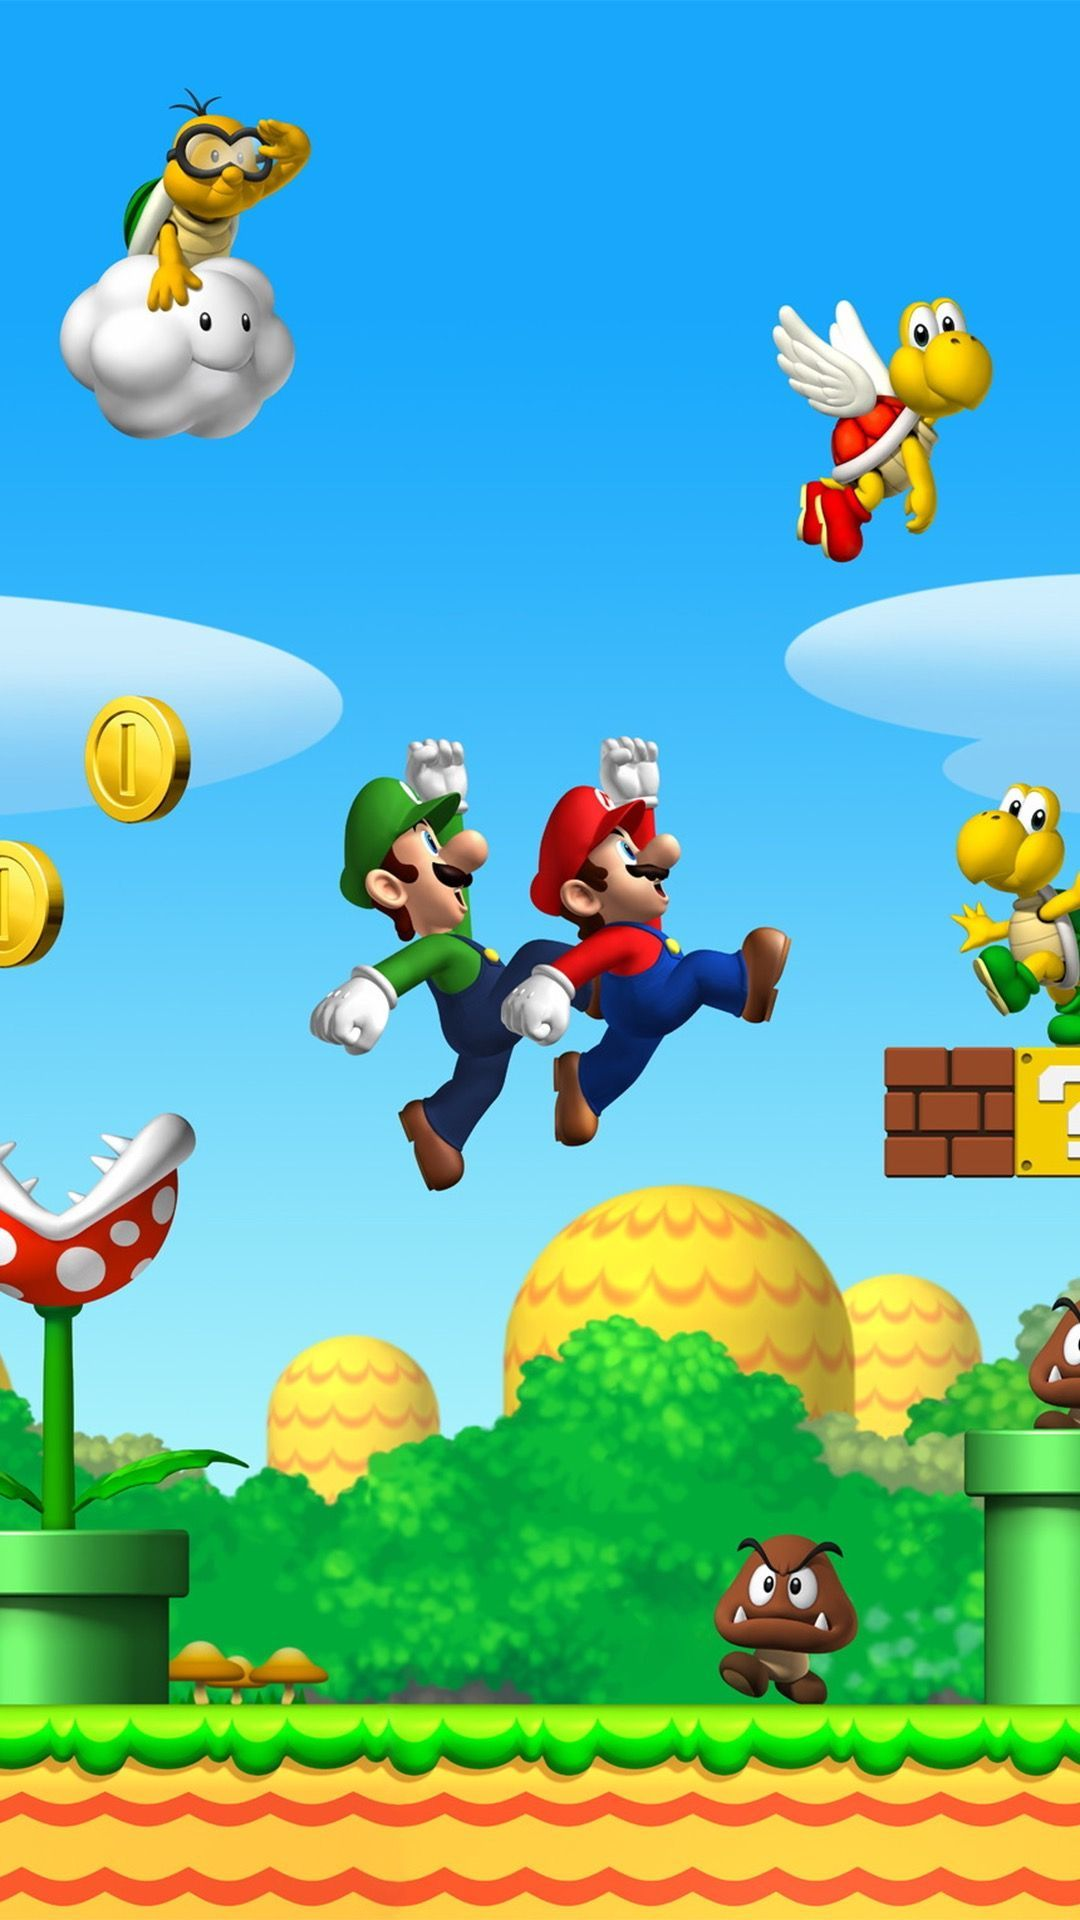 8 Bit Mario Iphone Background Games Wallpapers Ideas in